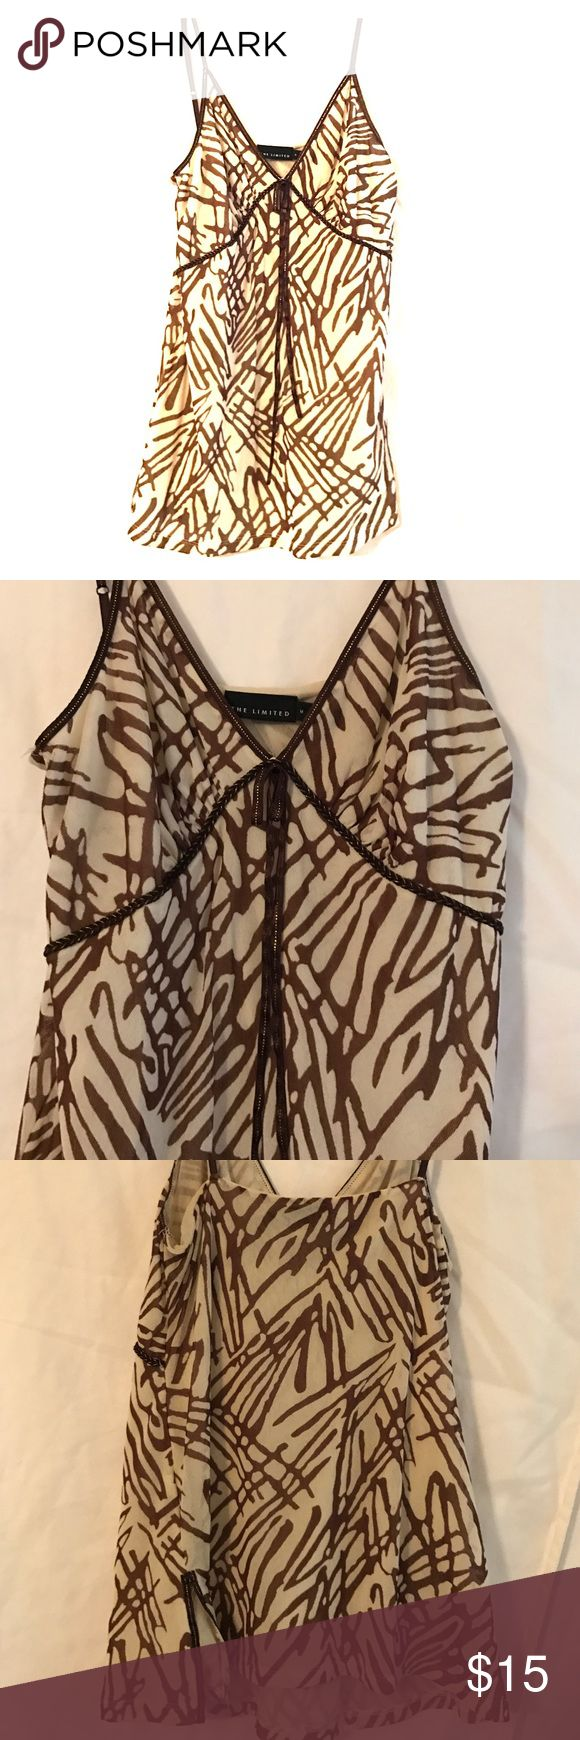 ❤️️FINAL SALE❤️ The Limited Camisole Super cute brown patterned cami The Limited Tops Camisoles